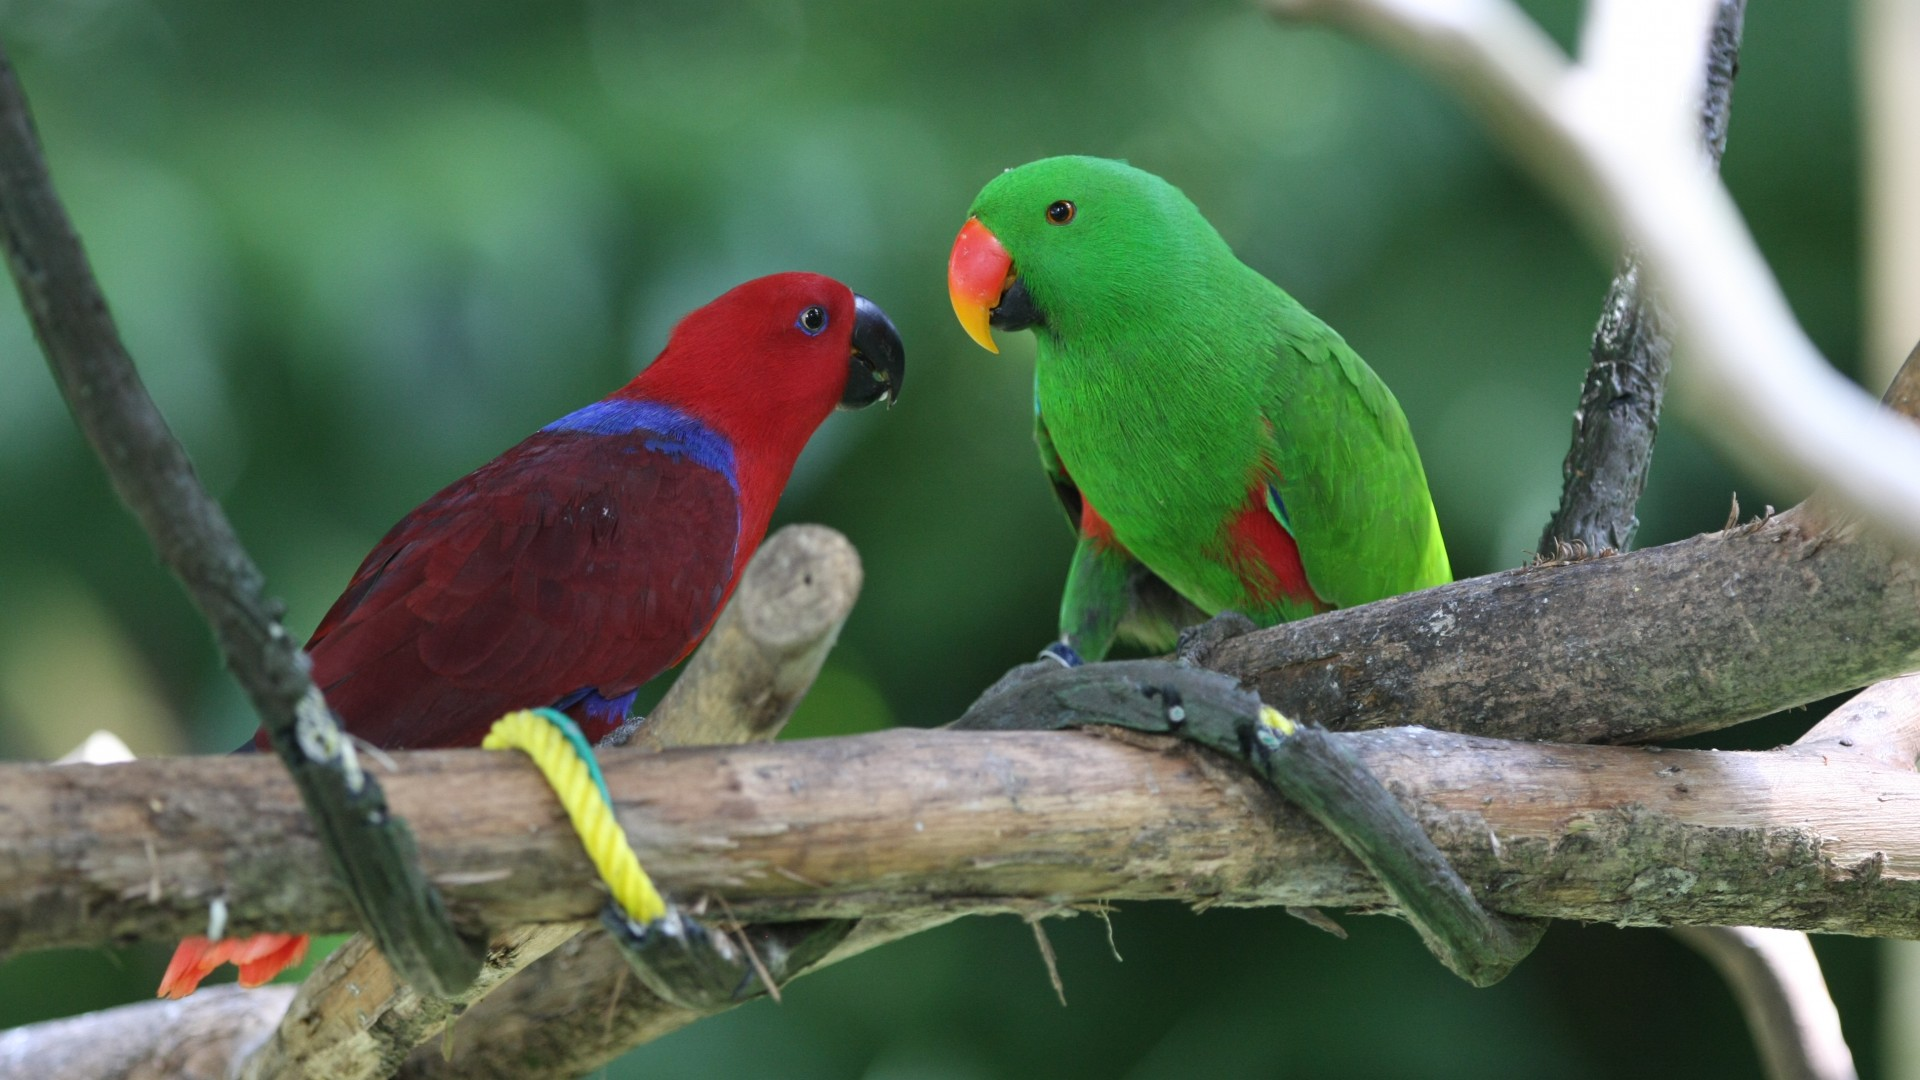 Amazon parrot, Antilles island, bird, green, red, nature, tourism, branch, animal (horizontal)